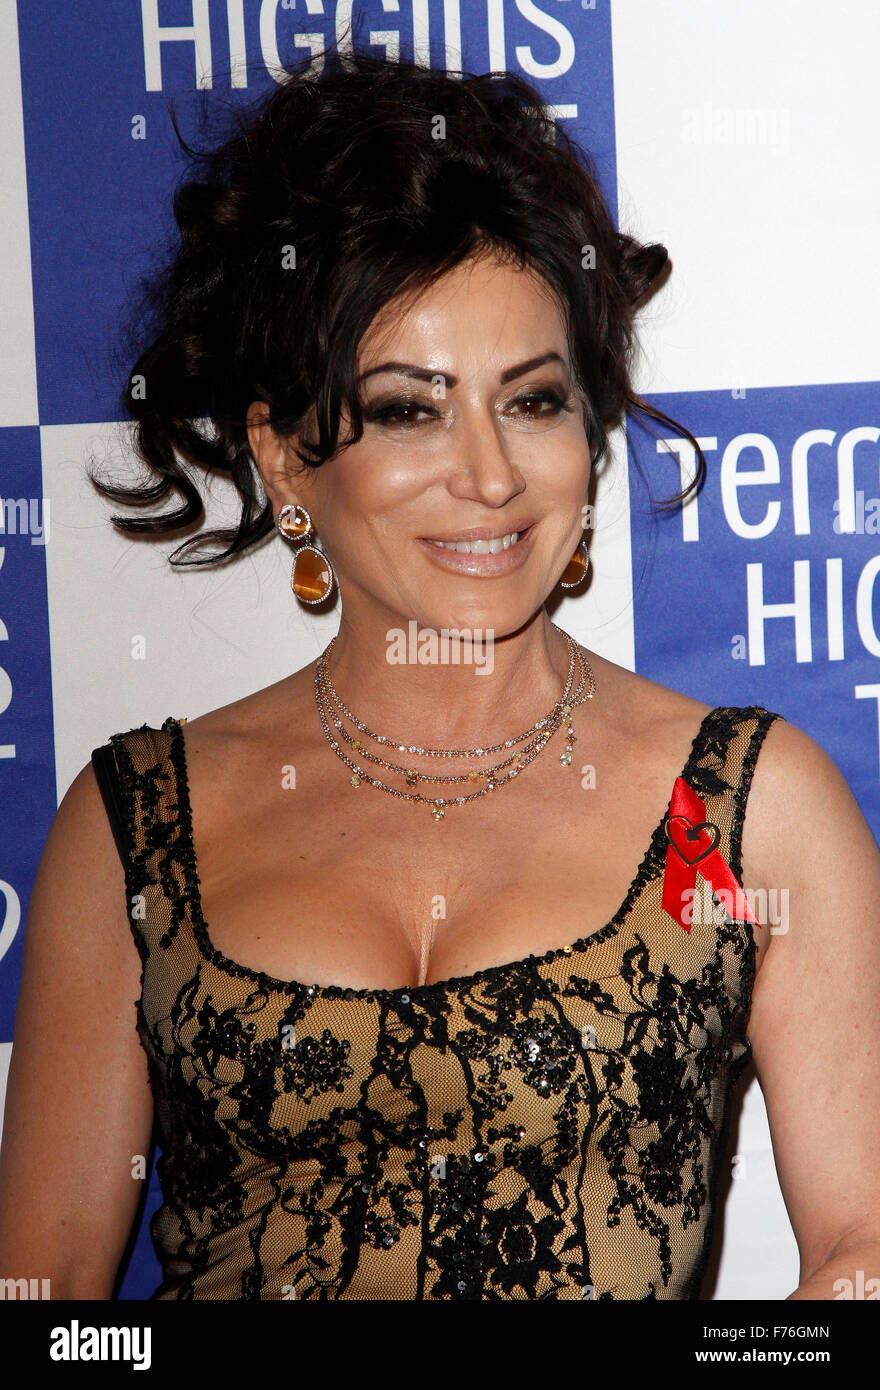 Mar 12, 2015 - London, England, UK - Nancy Dell'Olio attends Terrence Higgins Trust 'The Auction' - Stock Image